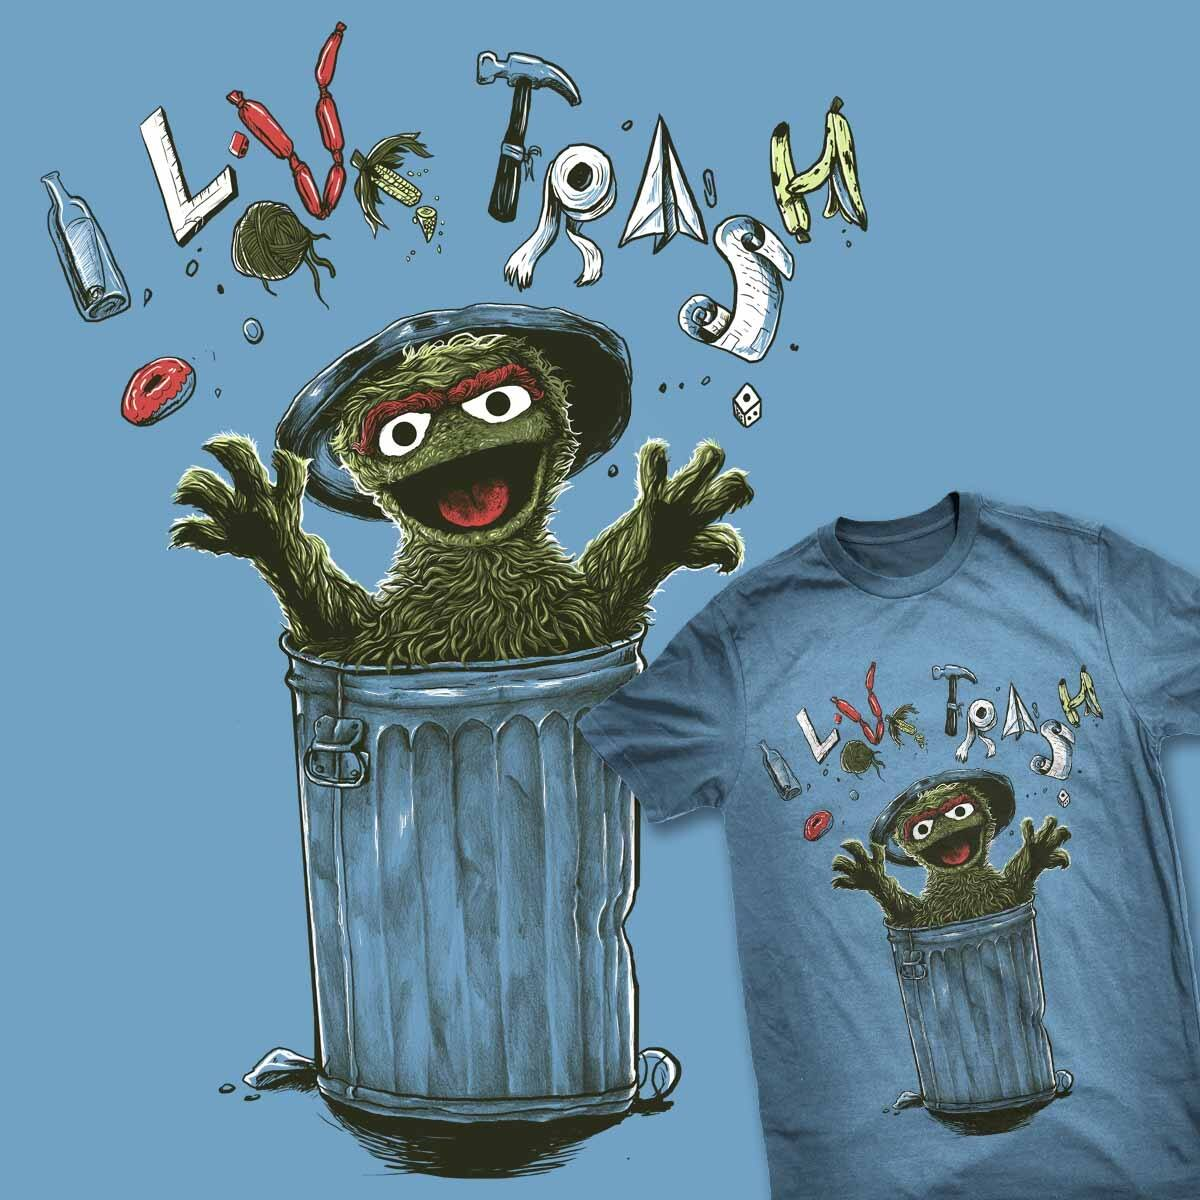 I Love Trash by goliath72 and bokien on Threadless